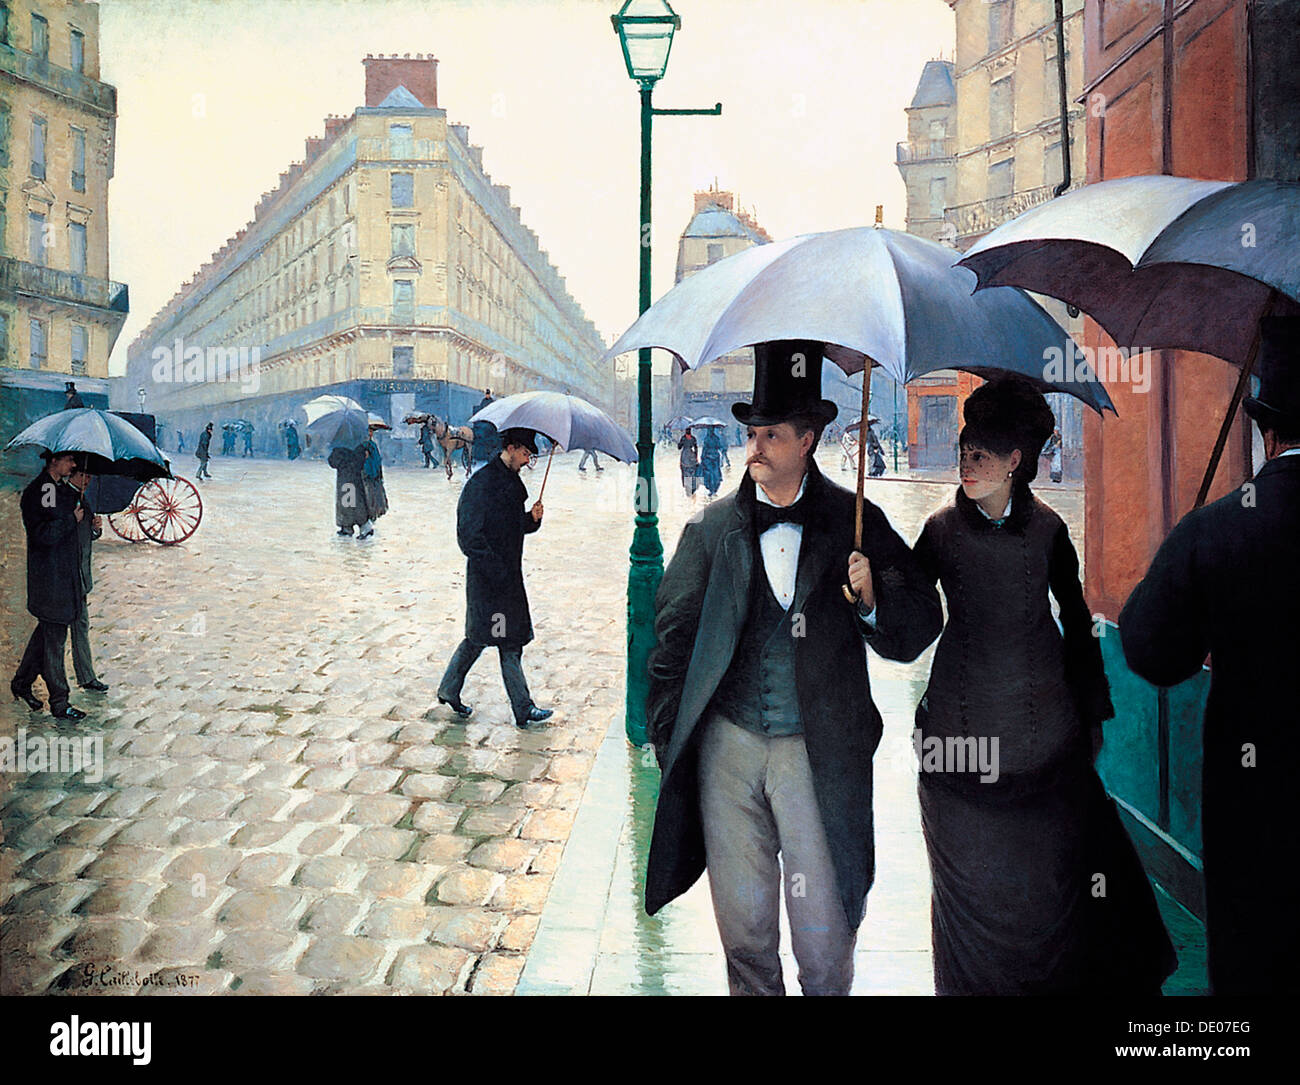 'Paris Street; Rainy Day', 1877. Artist: Gustave Caillebotte - Stock Image